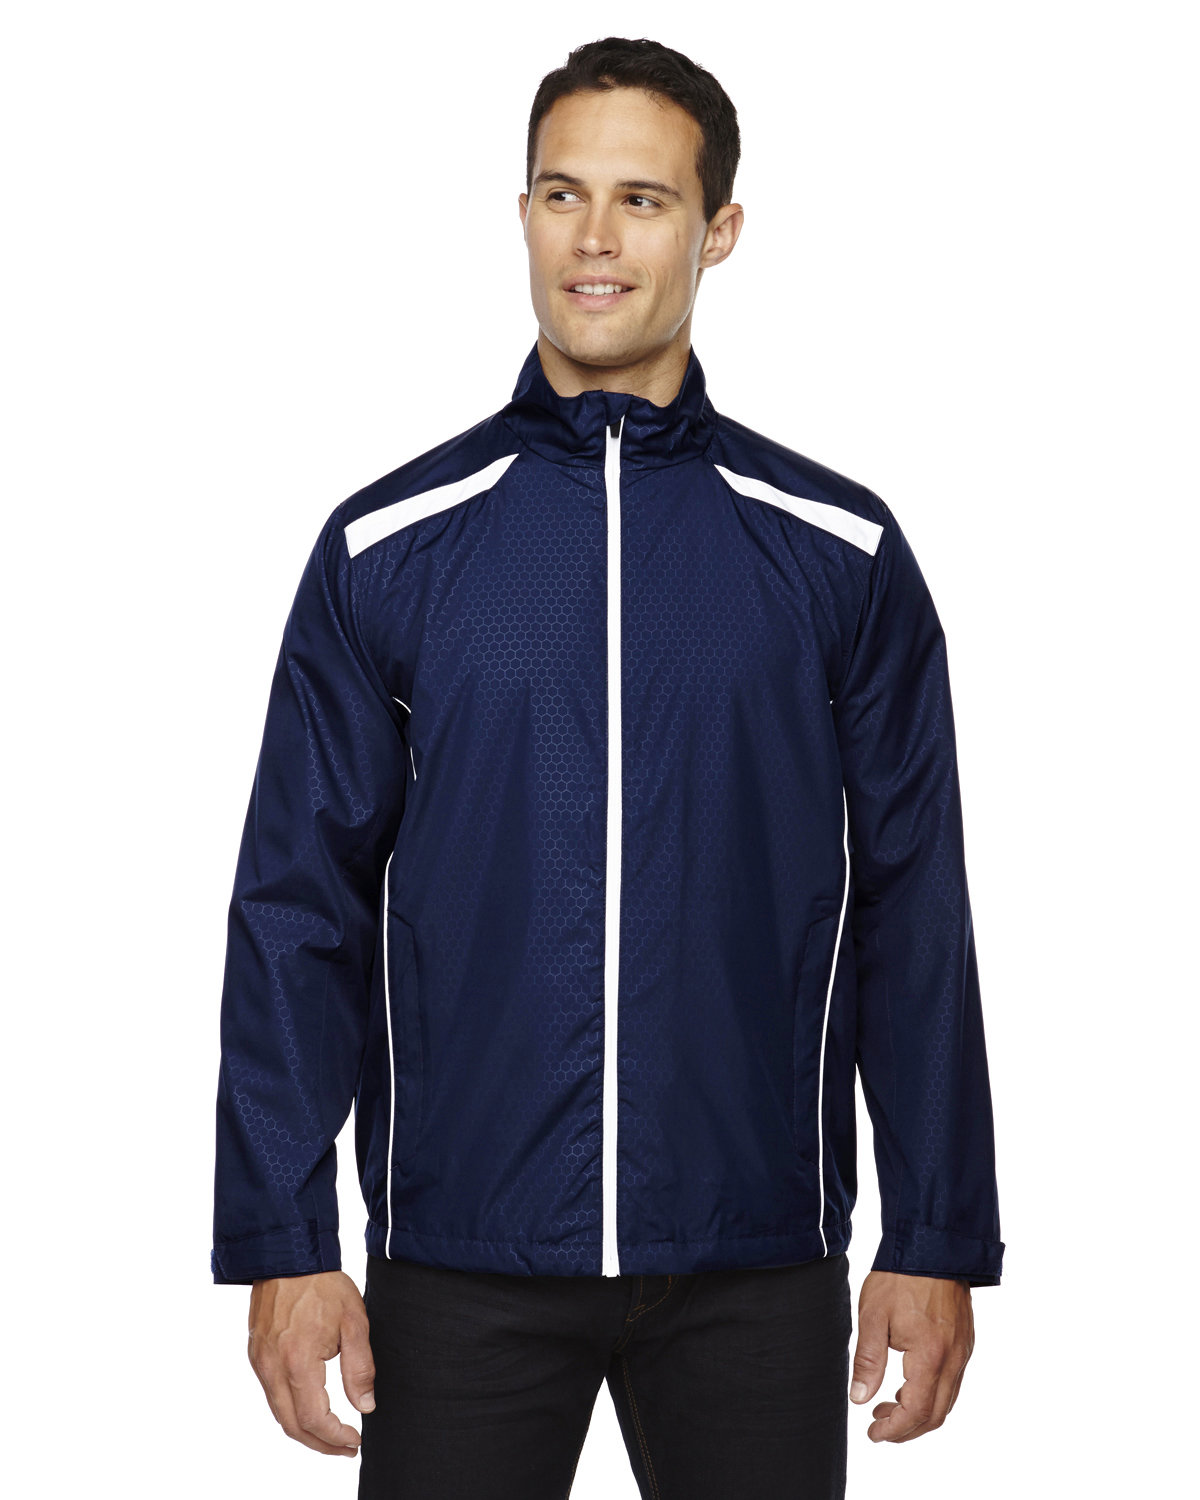 North End Men's Tempo Lightweight Recycled Polyester Jacket with Embossed Print CLASSIC NAVY